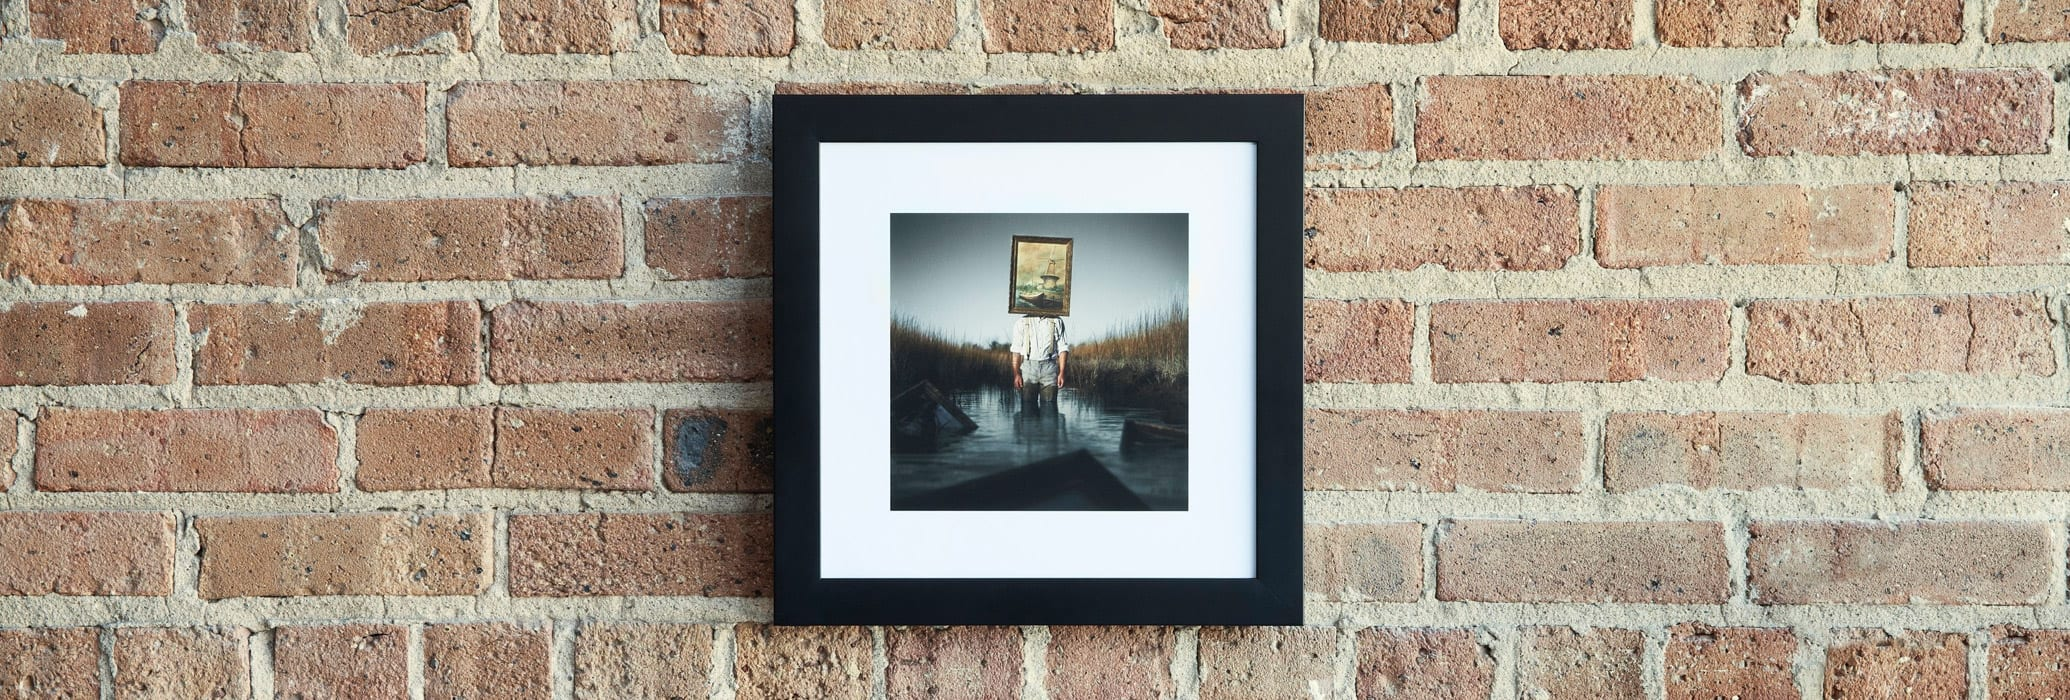 Framed art print example